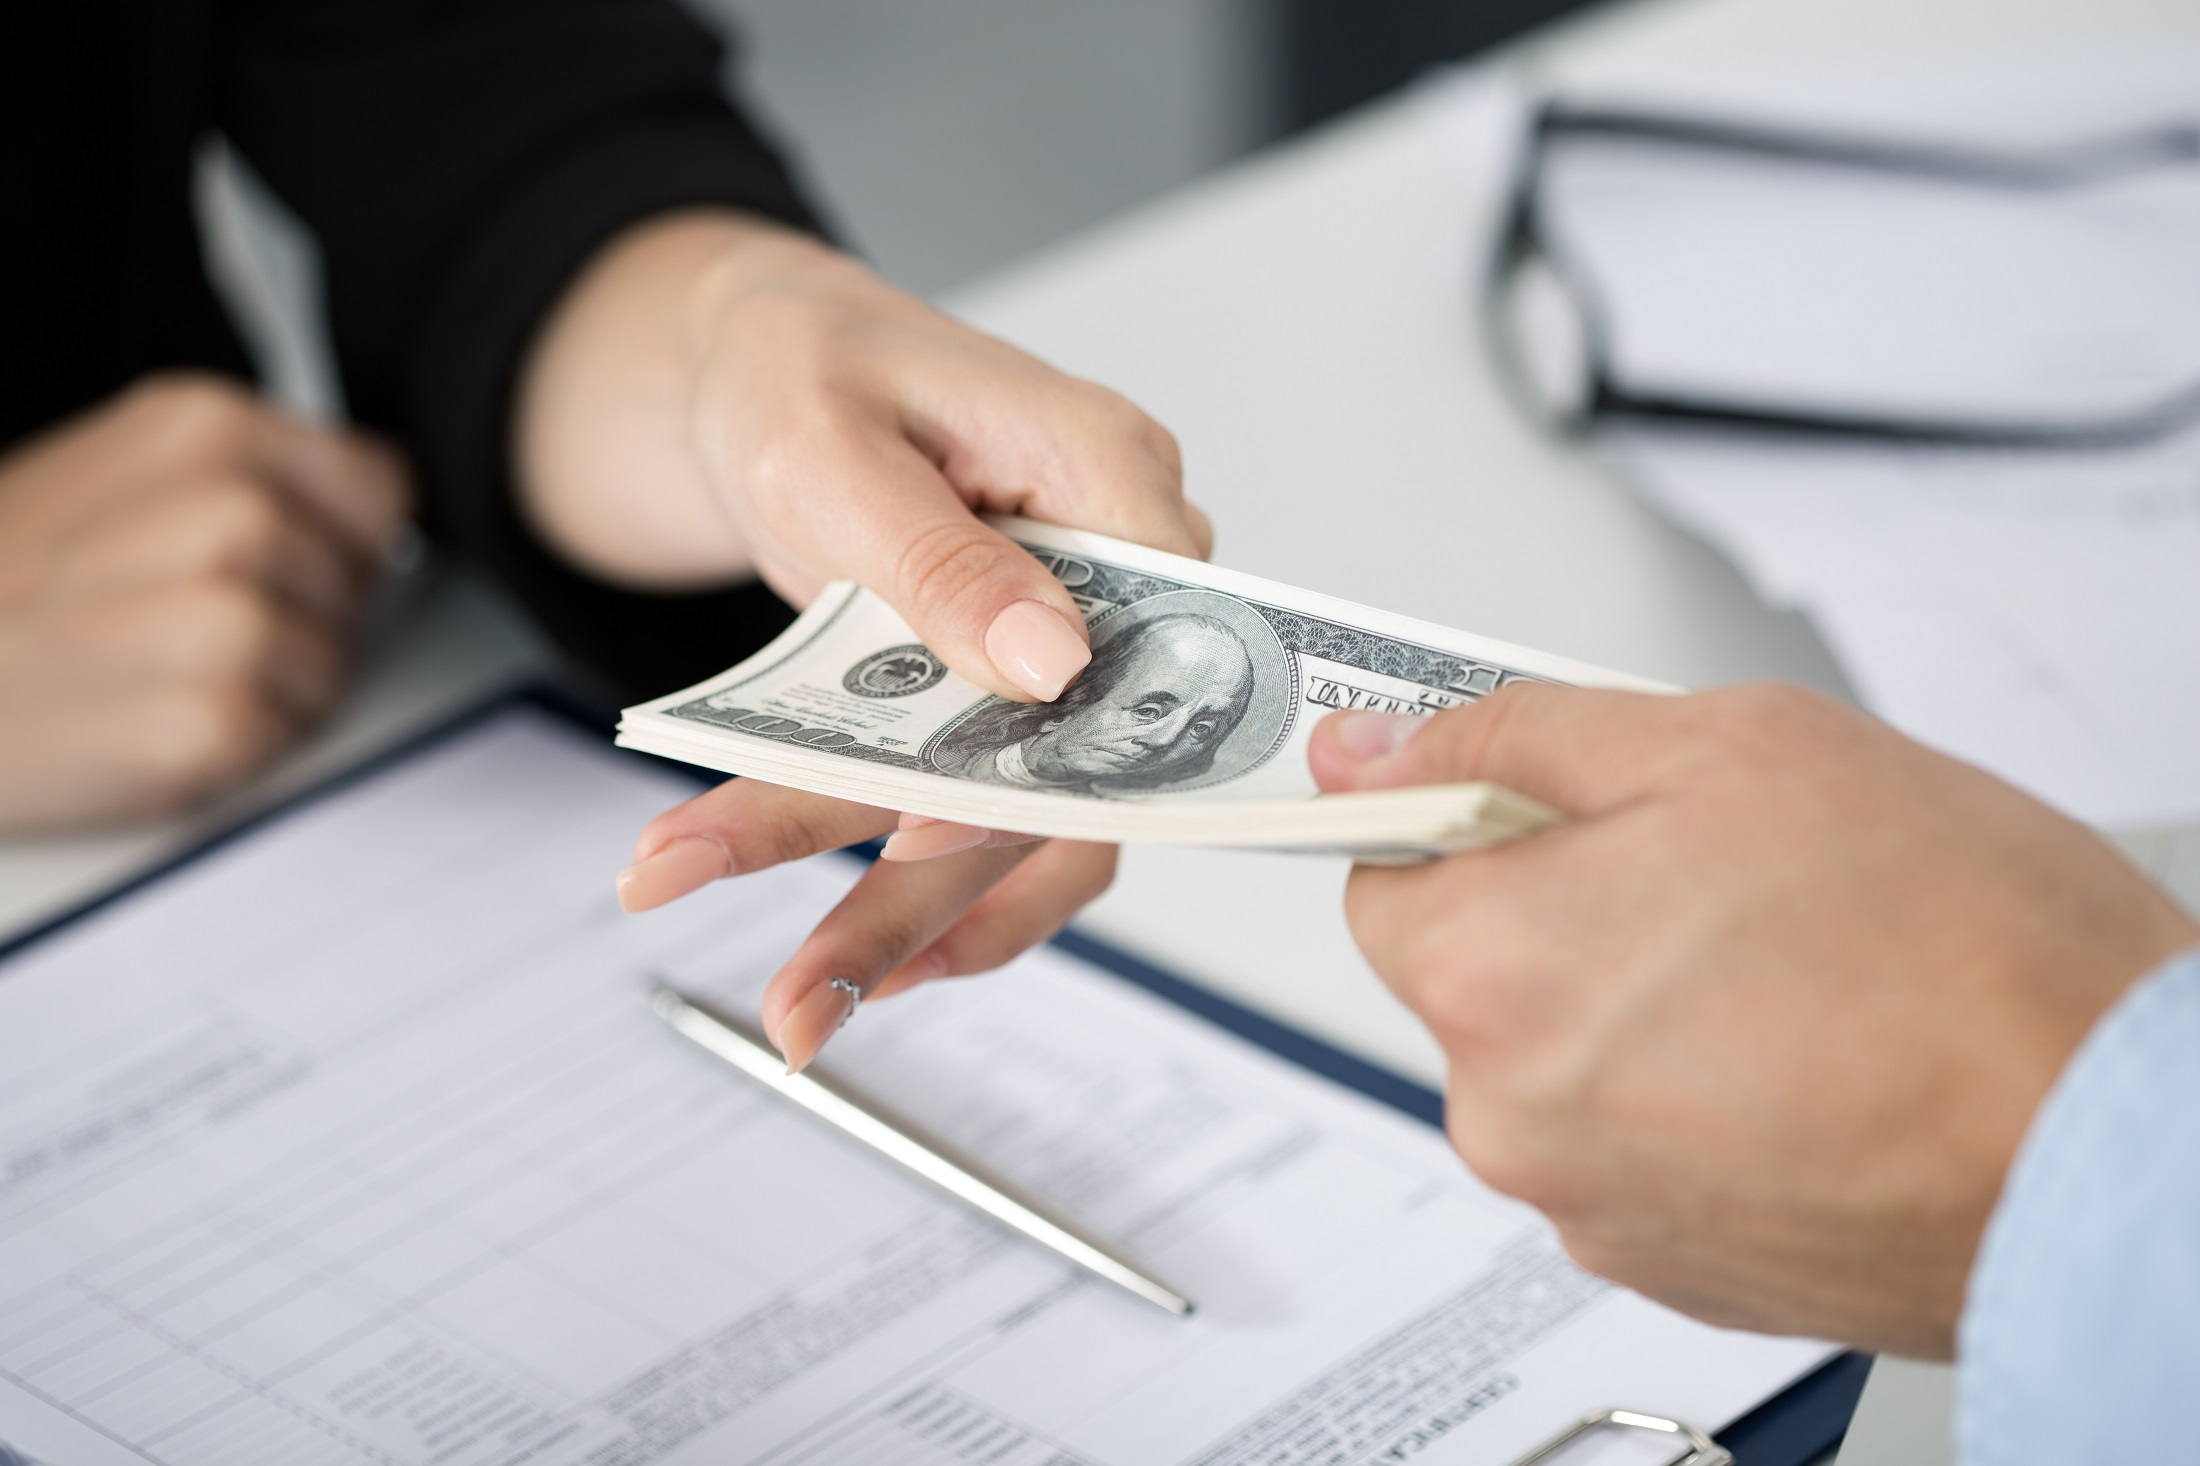 Payday Loans No Debit Card - Wonderful Loan at The Eleventh Hour